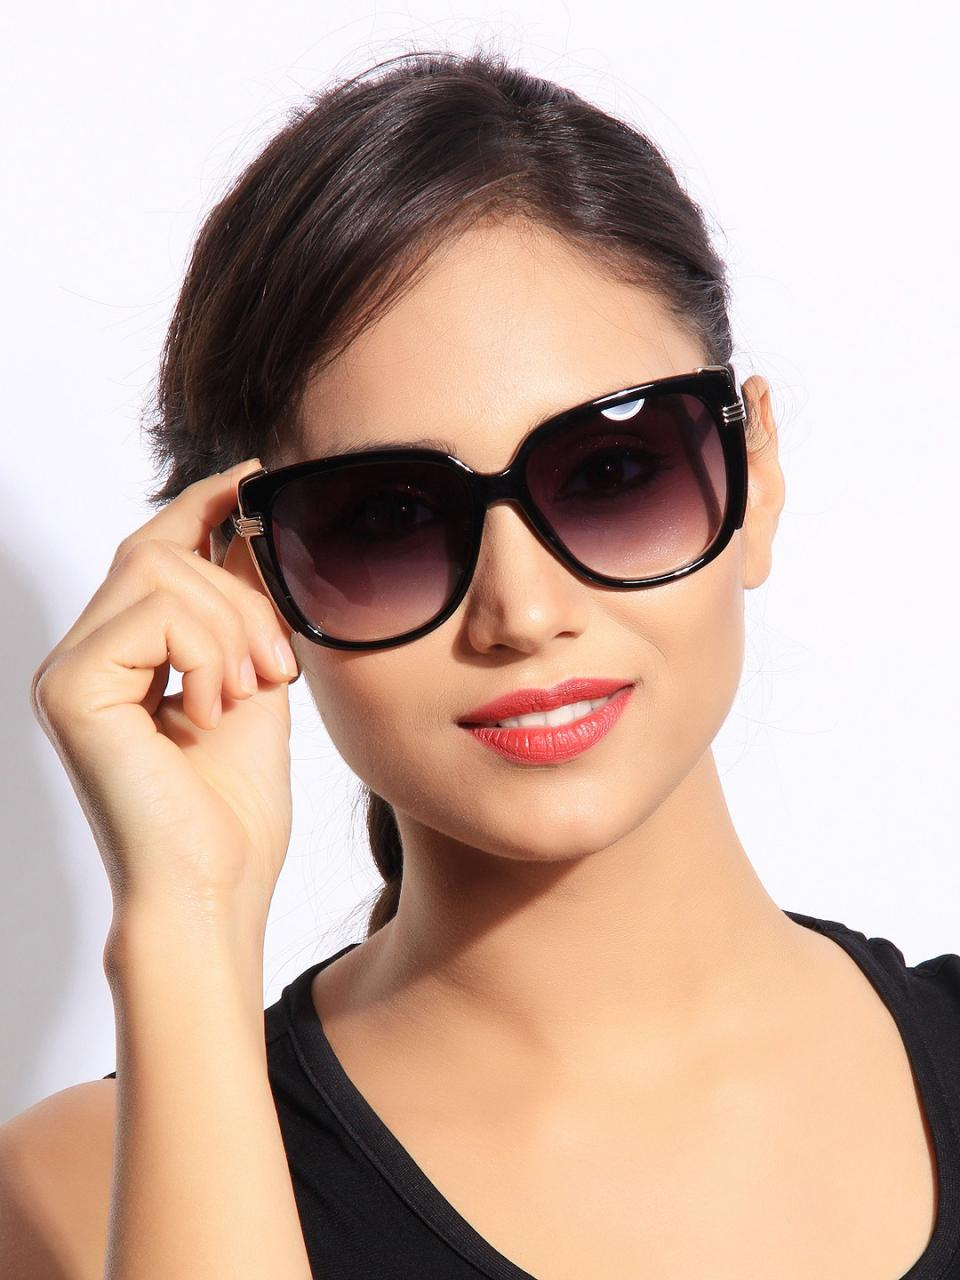 Find the latest sunglasses for women at Sunglass Hut, including the hottest styles from Oakley, Ray-Ban, Gucci and Prada. Free Shipping on all orders! Find the latest sunglasses for women at Sunglass Hut, including the hottest styles from Oakley, Ray-Ban, Gucci and Prada. Free Shipping on all orders!